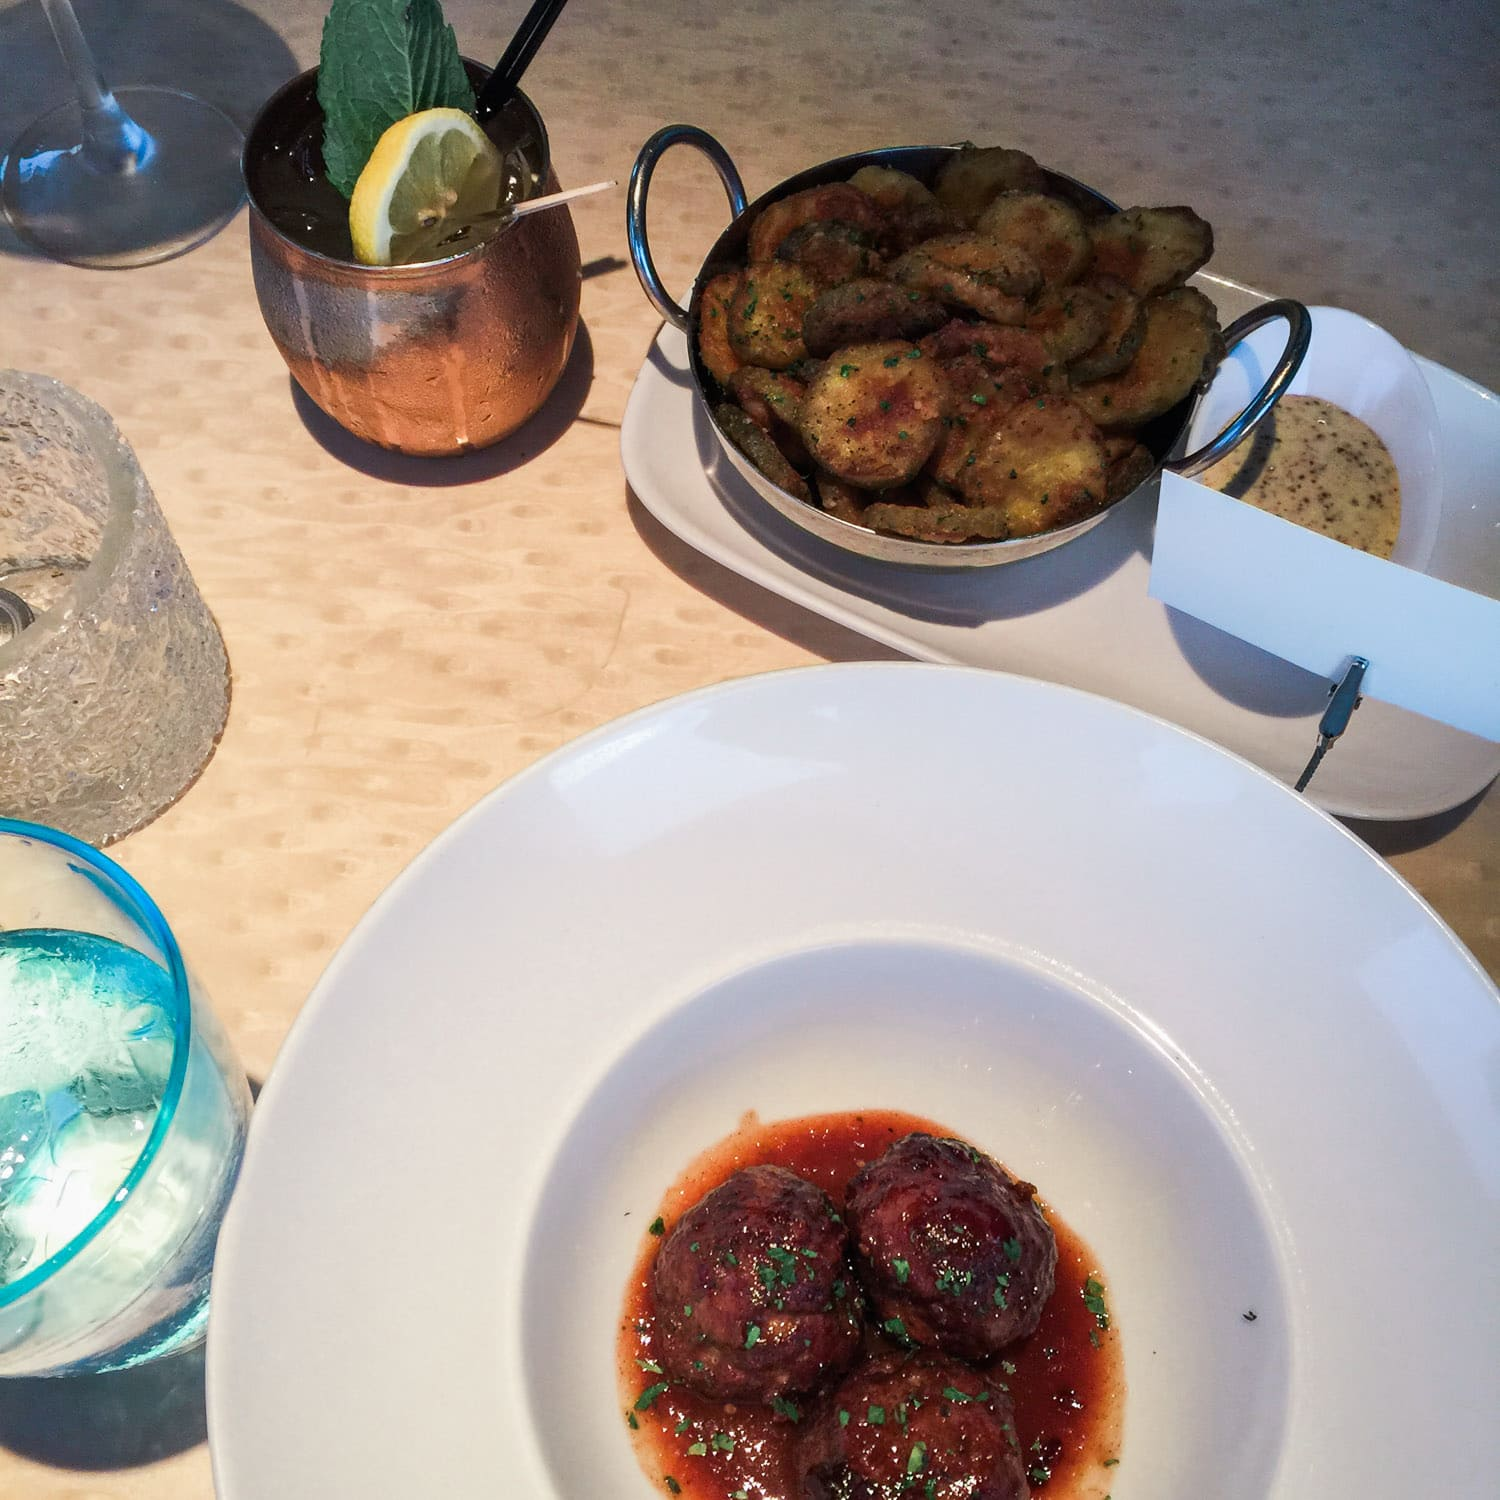 The Blue restaurant review + A full review of the Boca Raton Resort & Club by blogger Ashley Brooke Nicholas